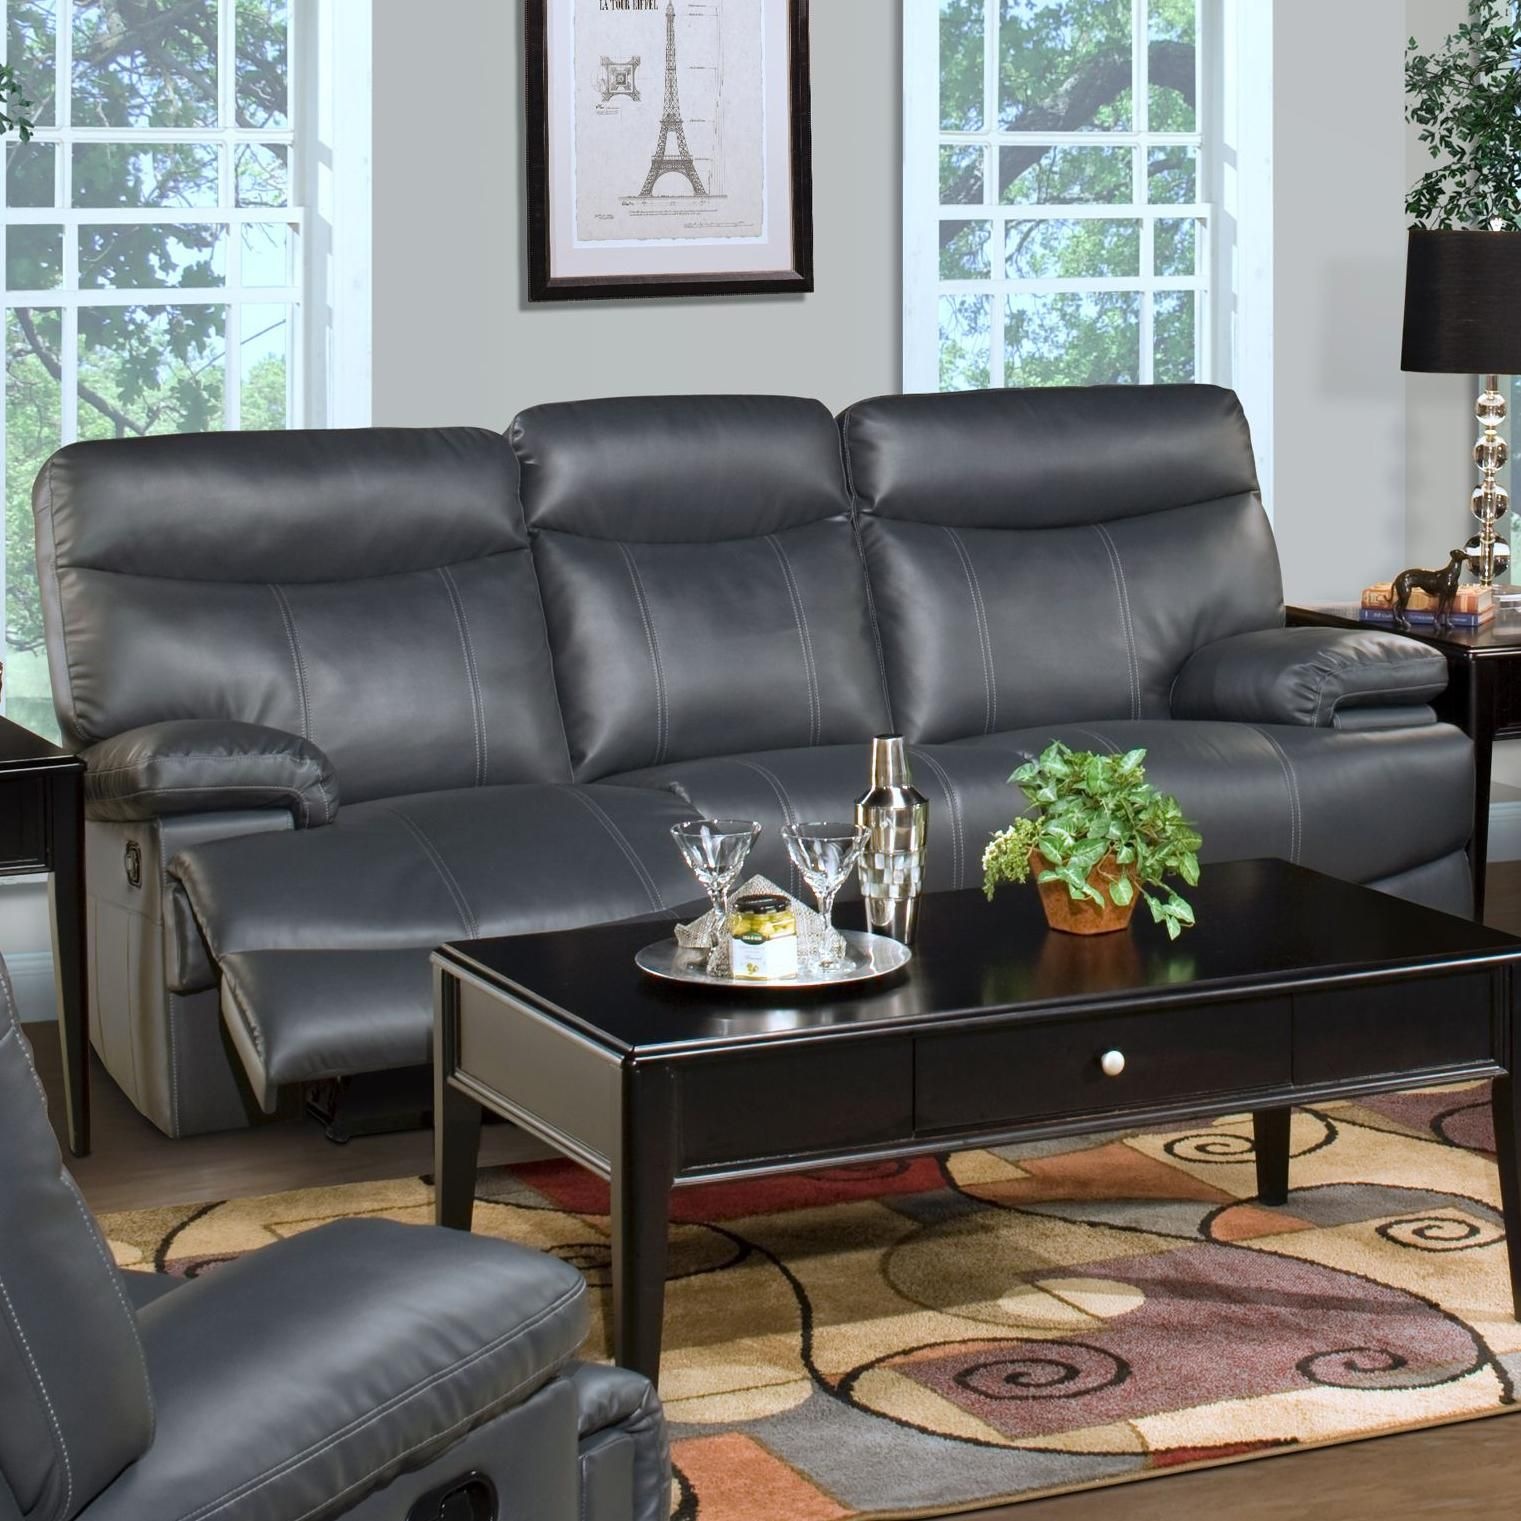 Best Apollo Reclining Sofa By New Classic Sofa Inspiration 640 x 480